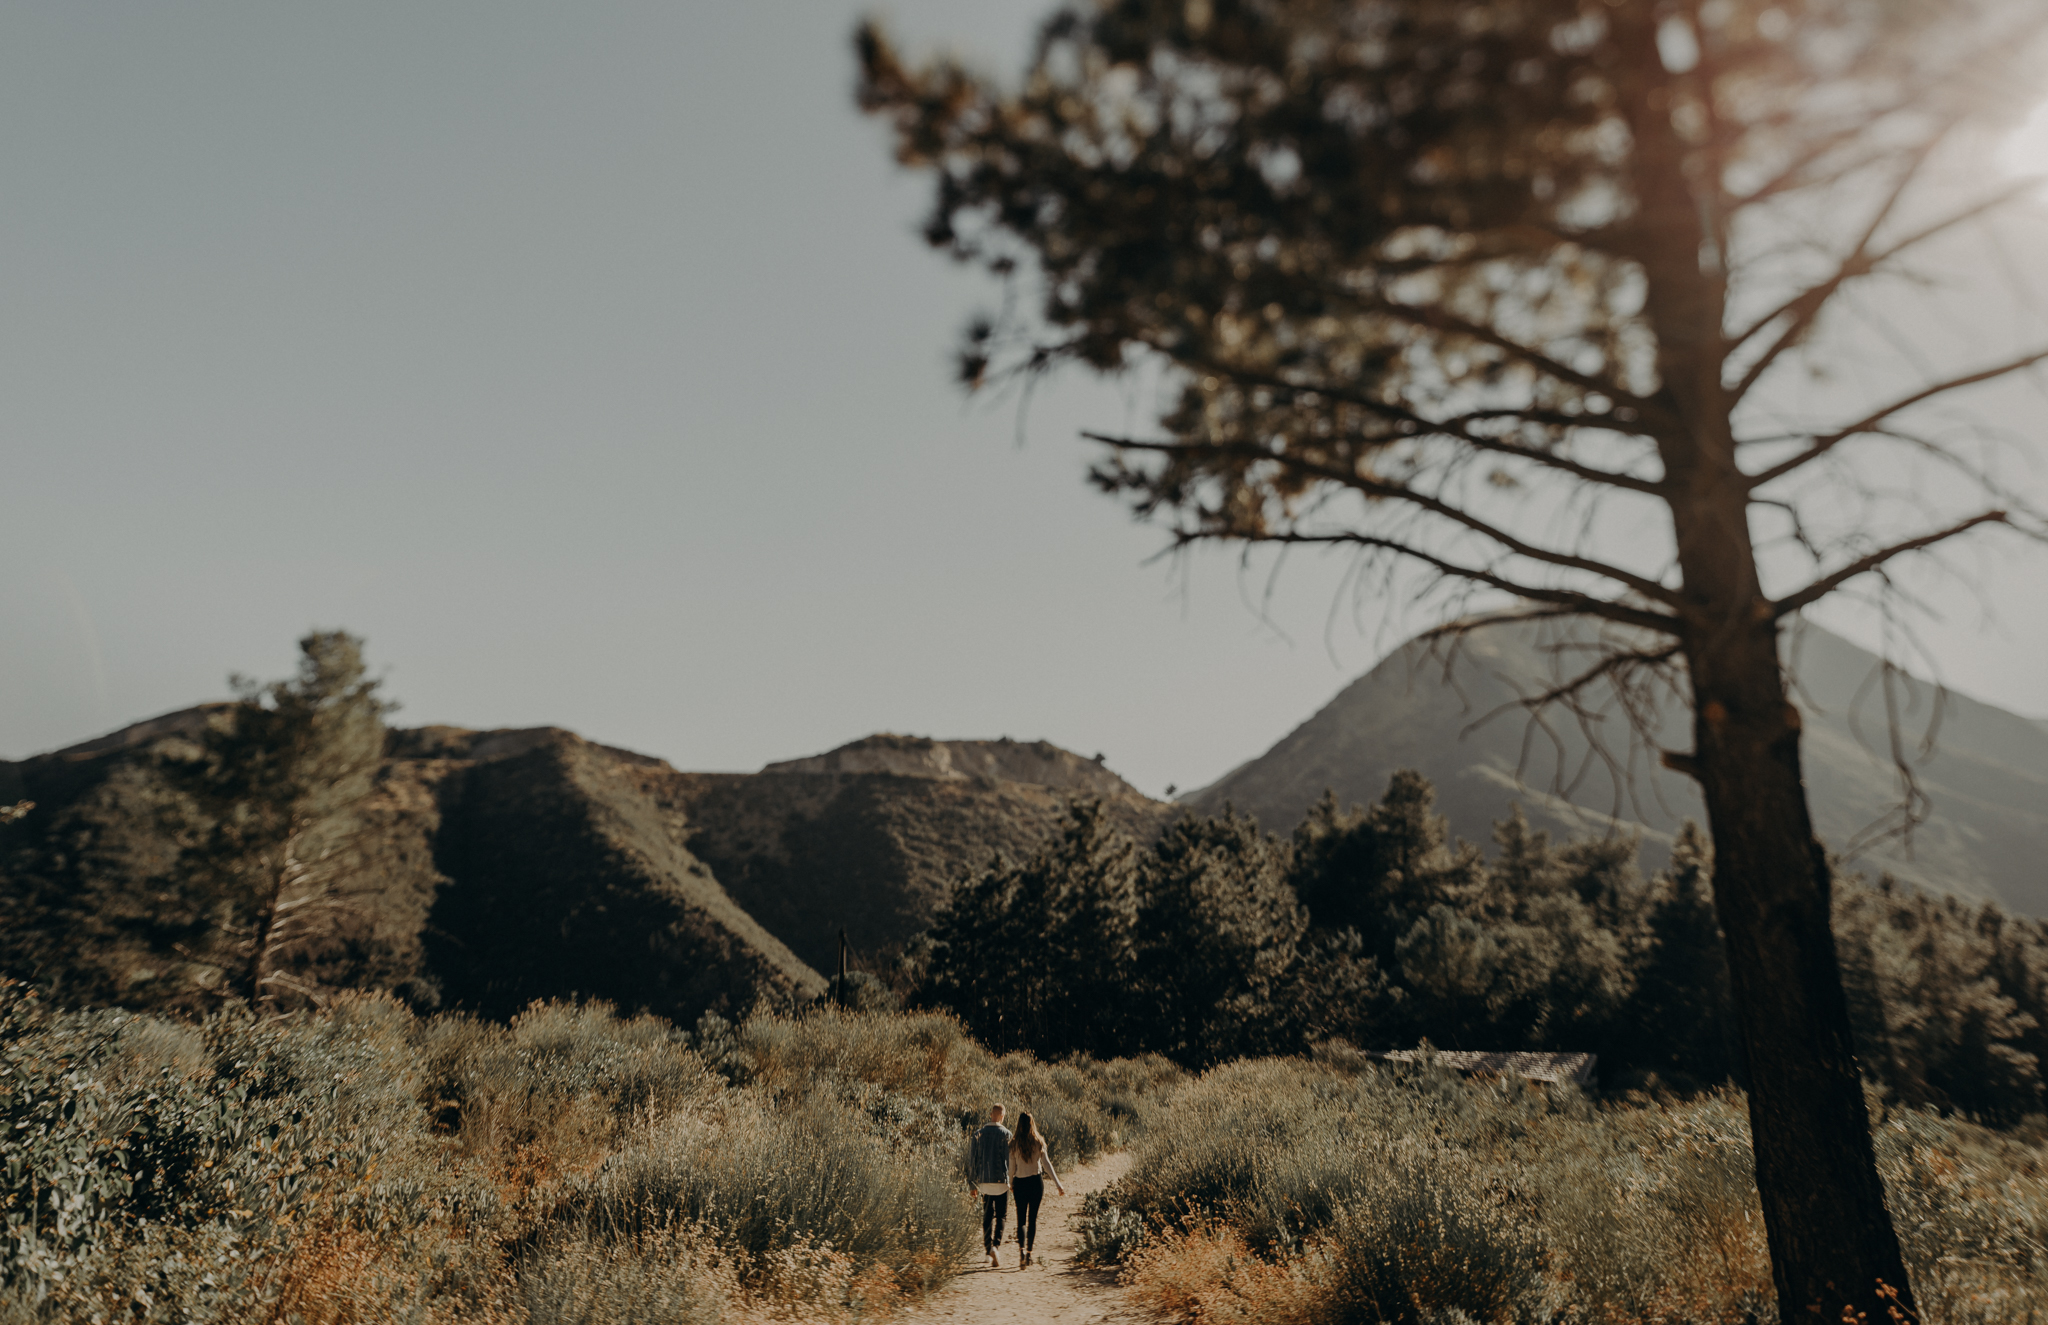 Isaiah + Taylor Photography - Los Angeles Forest Engagement, Laid-back Wedding Photographer-008.jpg